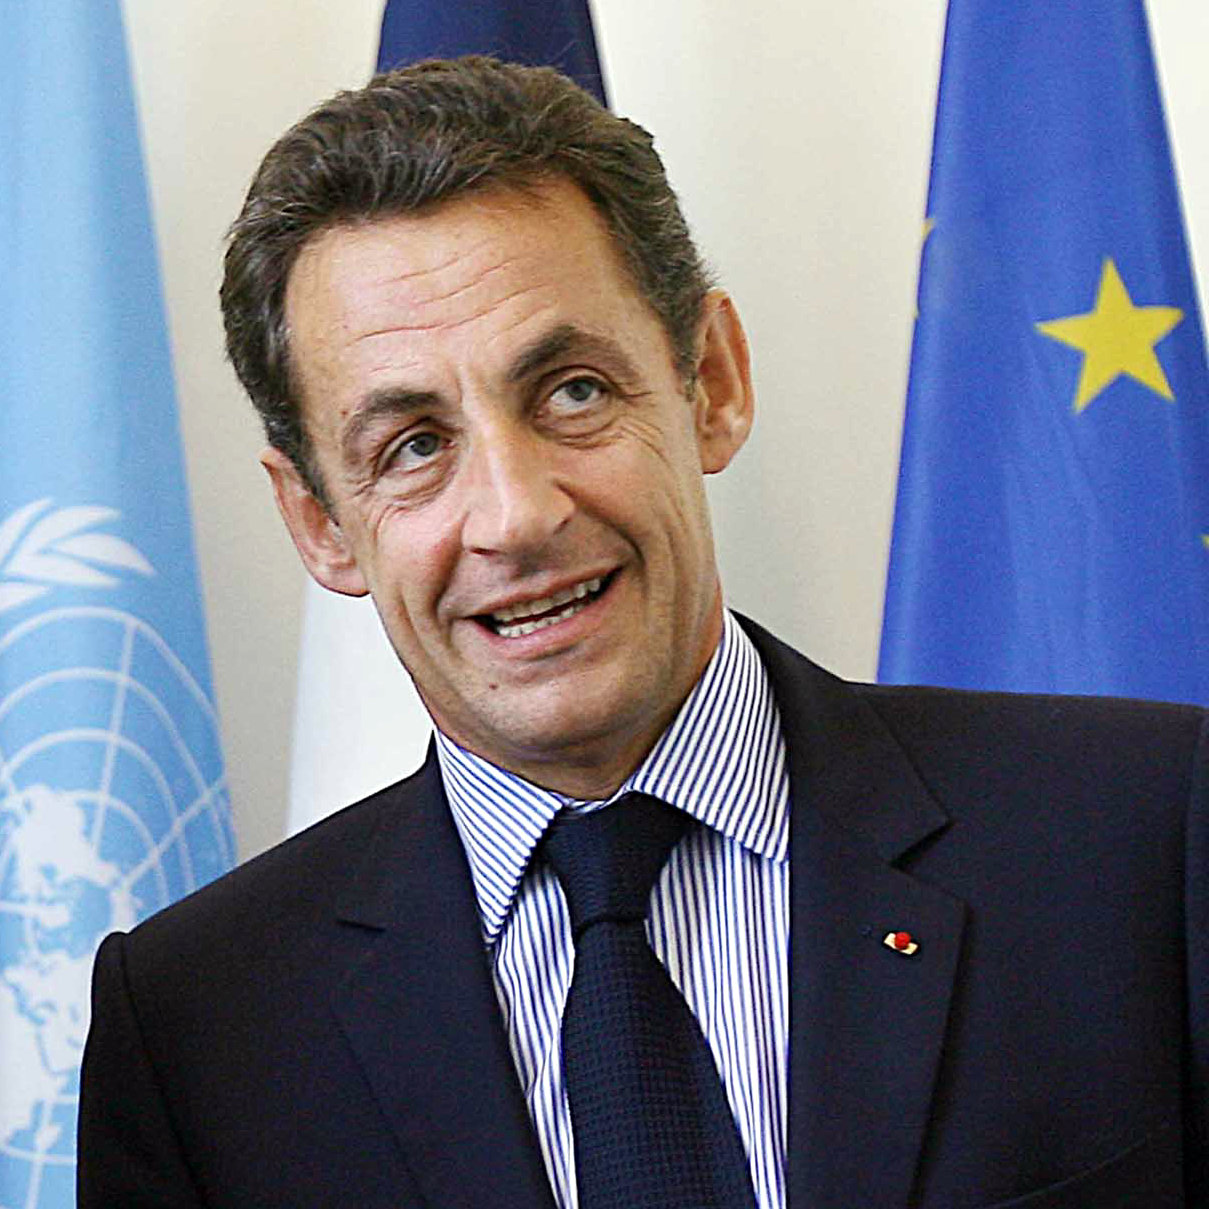 File:Lula-SARKOZY-cropped.jpg - Wikimedia Commons